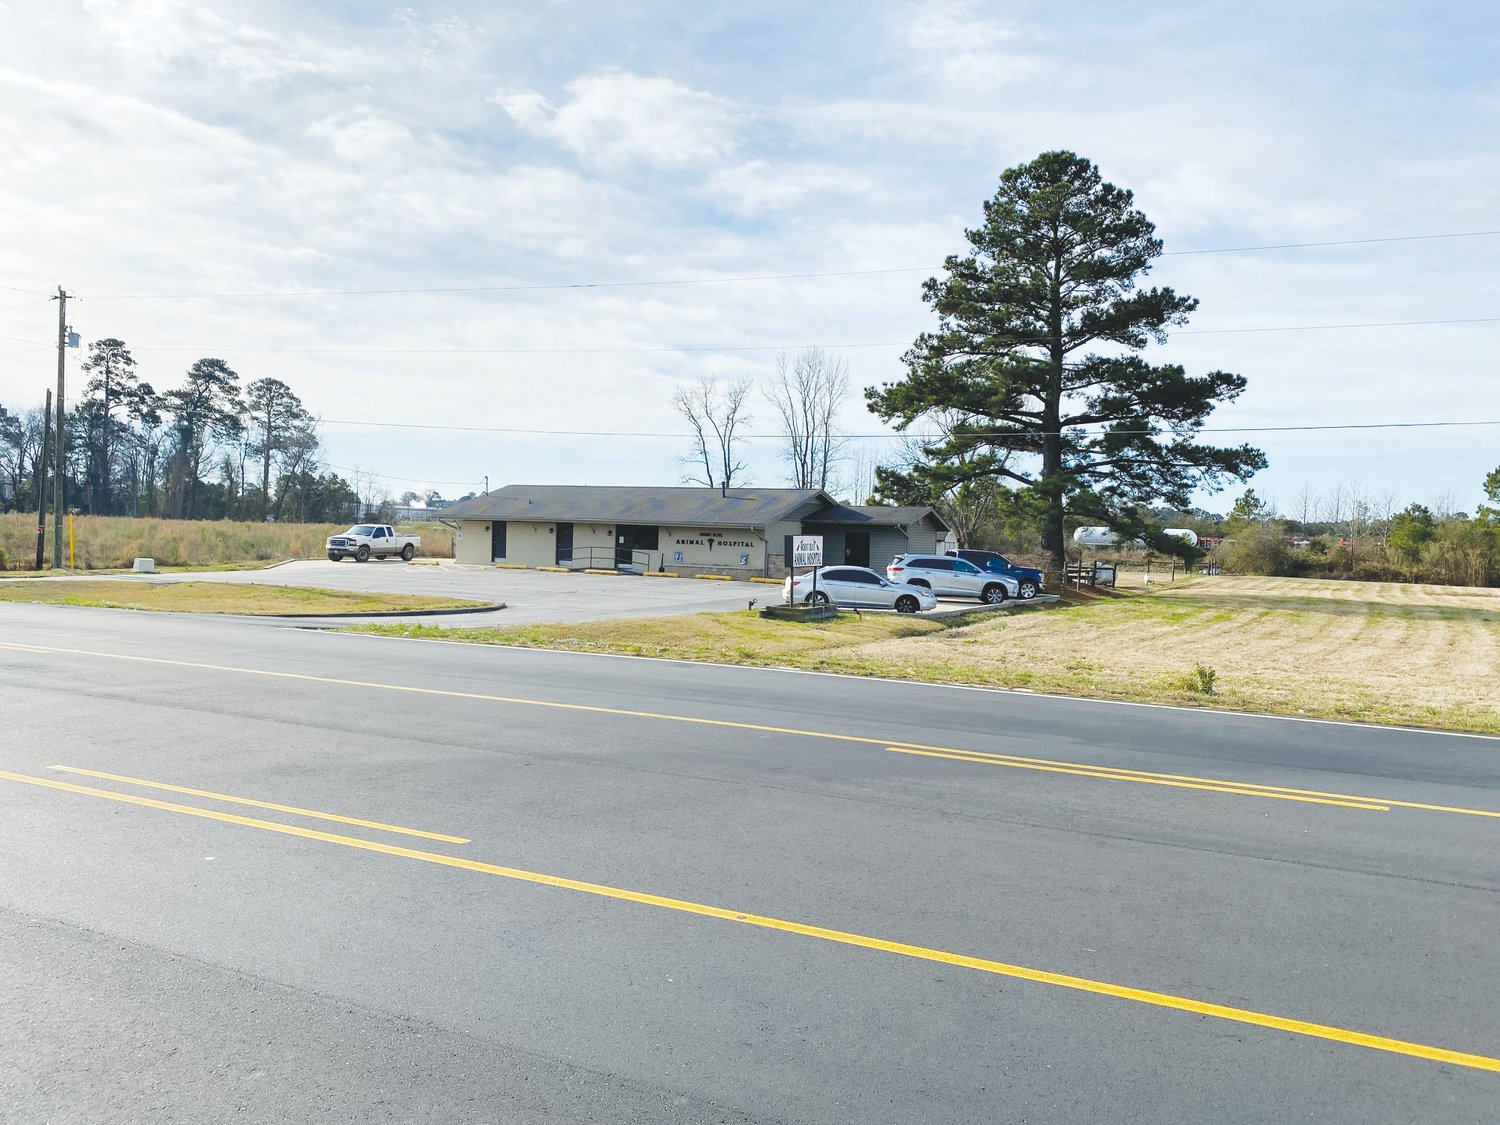 N.C. Highway 55 stretches before the Mount Olive Animal Hospital. The town of Mount Olive is asking the DOT to conduct a feasibility study on lowering the speed limit from 45 to 35 mph between the Mount Olive Animal Hospital, just east of Breazeale Avenue, and Walmart.